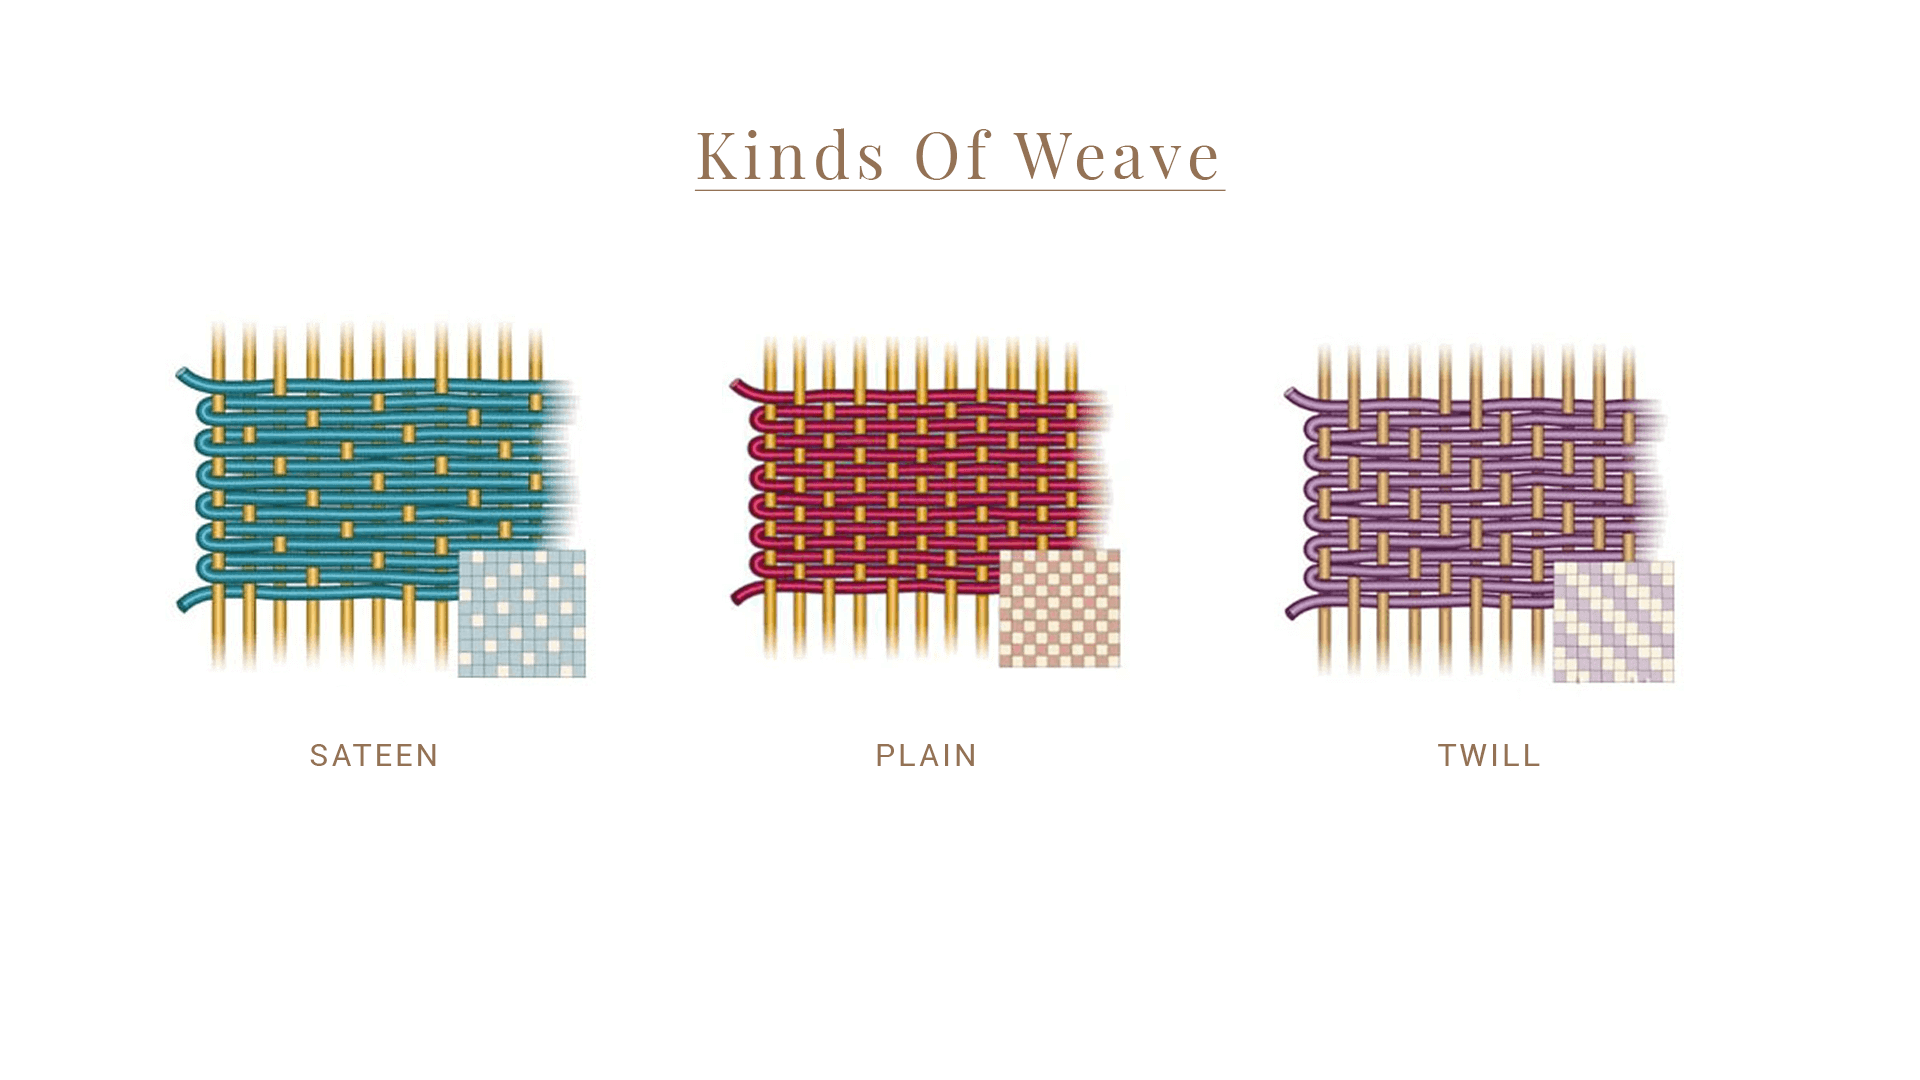 Kinds of Weaves